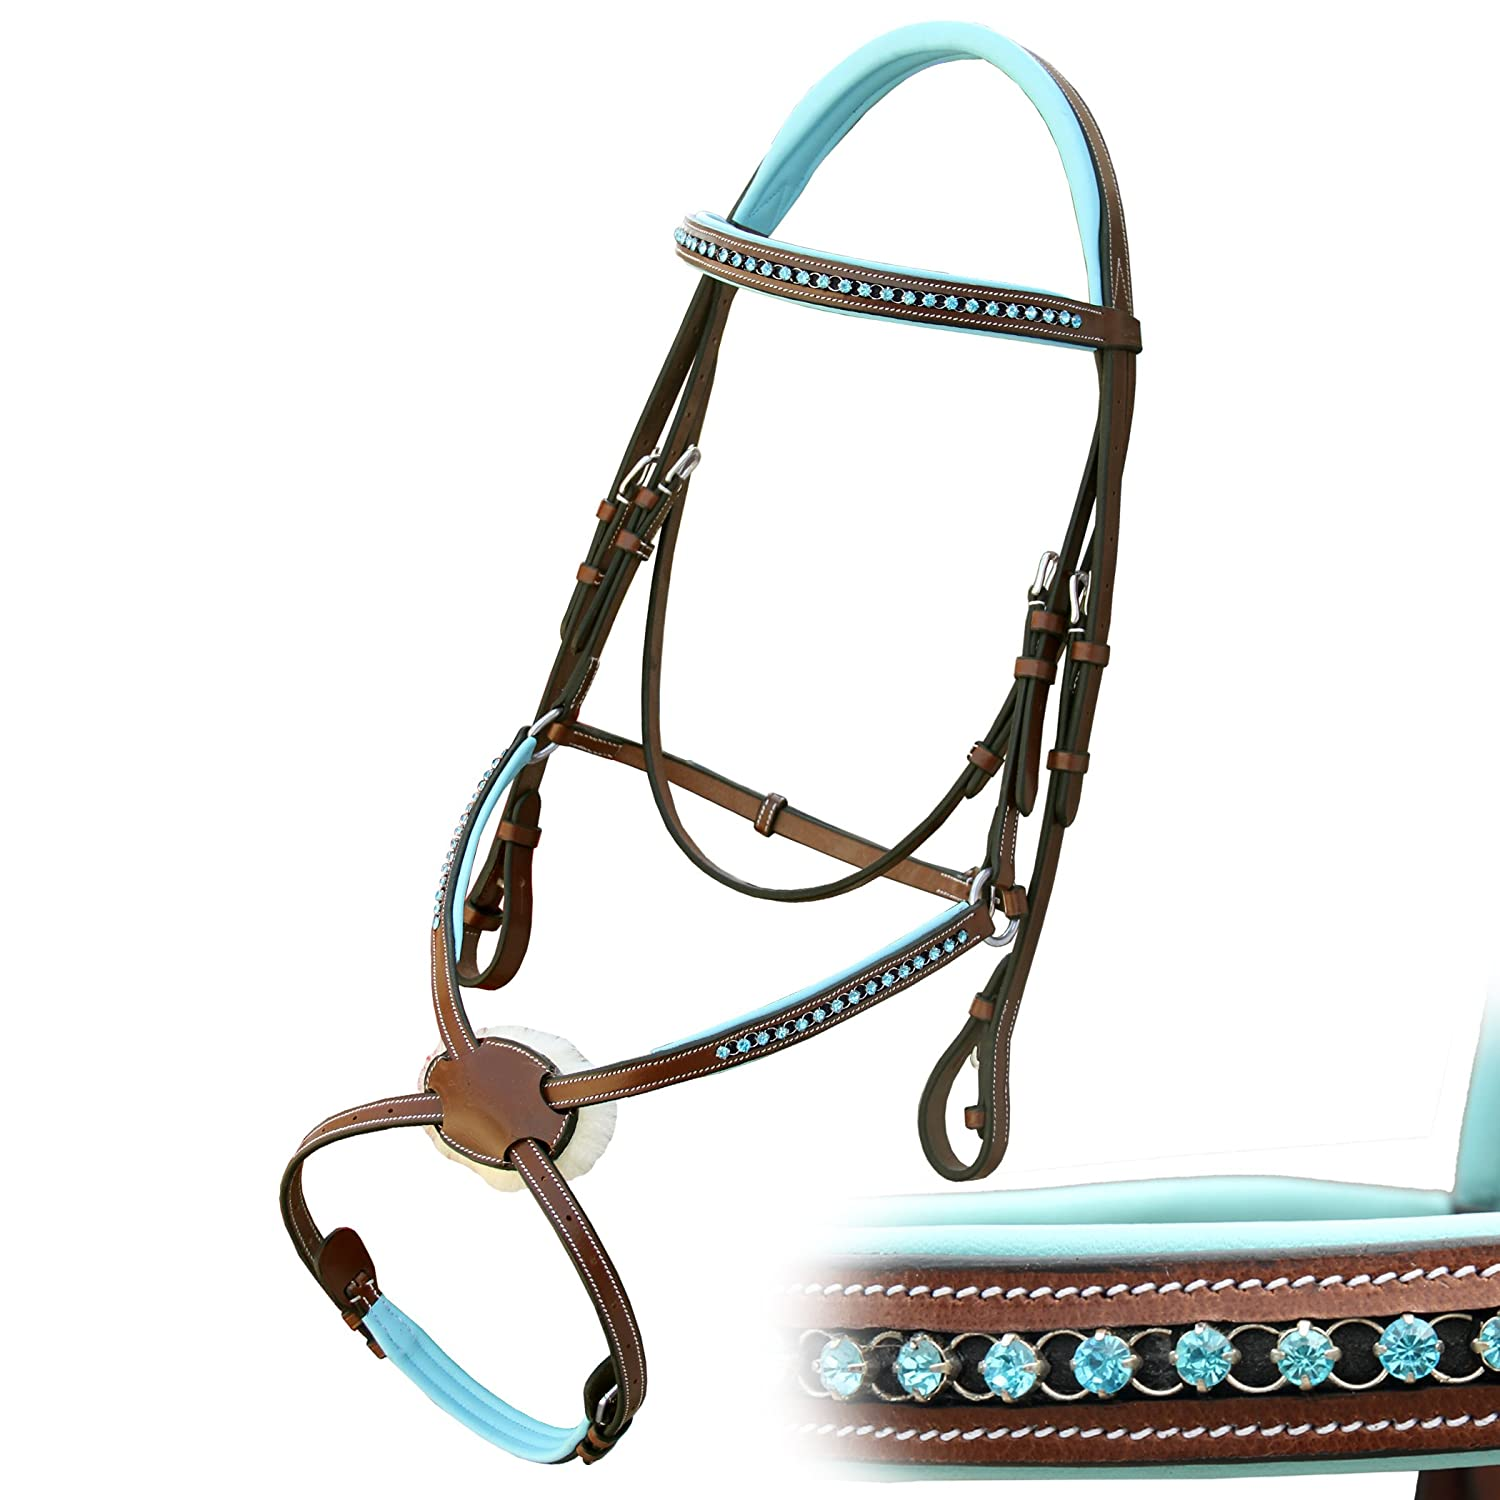 Conker (Tan Brown) Horse (Full) Conker (Tan Brown) Horse (Full) Exion bluee Round Ring Diamond Figure 8 Leather Bridle with PP Rubber Grip Reins and Stainless Steel Buckles   Equestrian Show Jumping Padded Bridle Set   English Horse Riding Tack   Conker